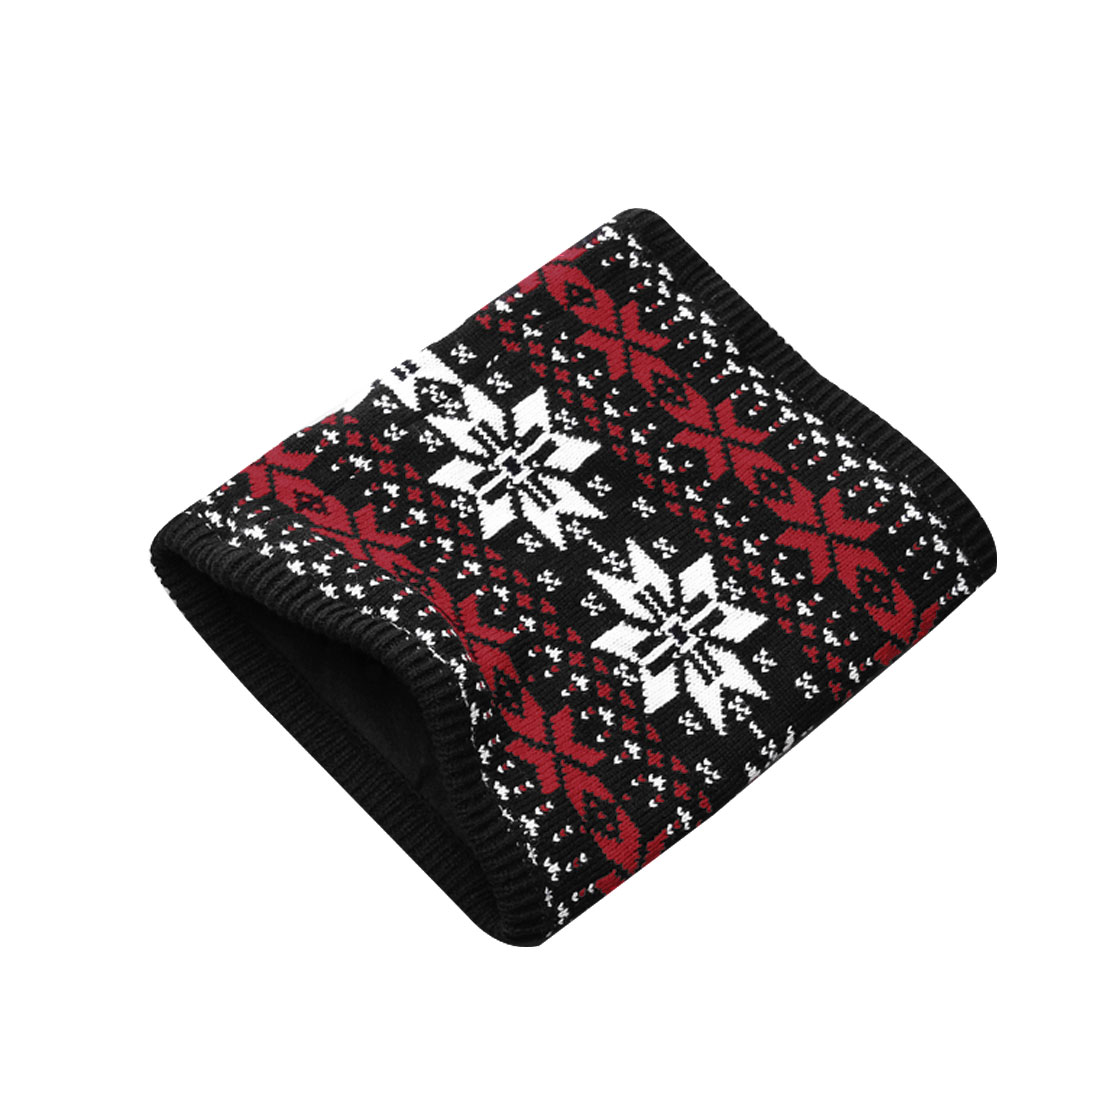 Mens Red White Black Fashion Novelty Prints Stretch Knitting Tube Scarf